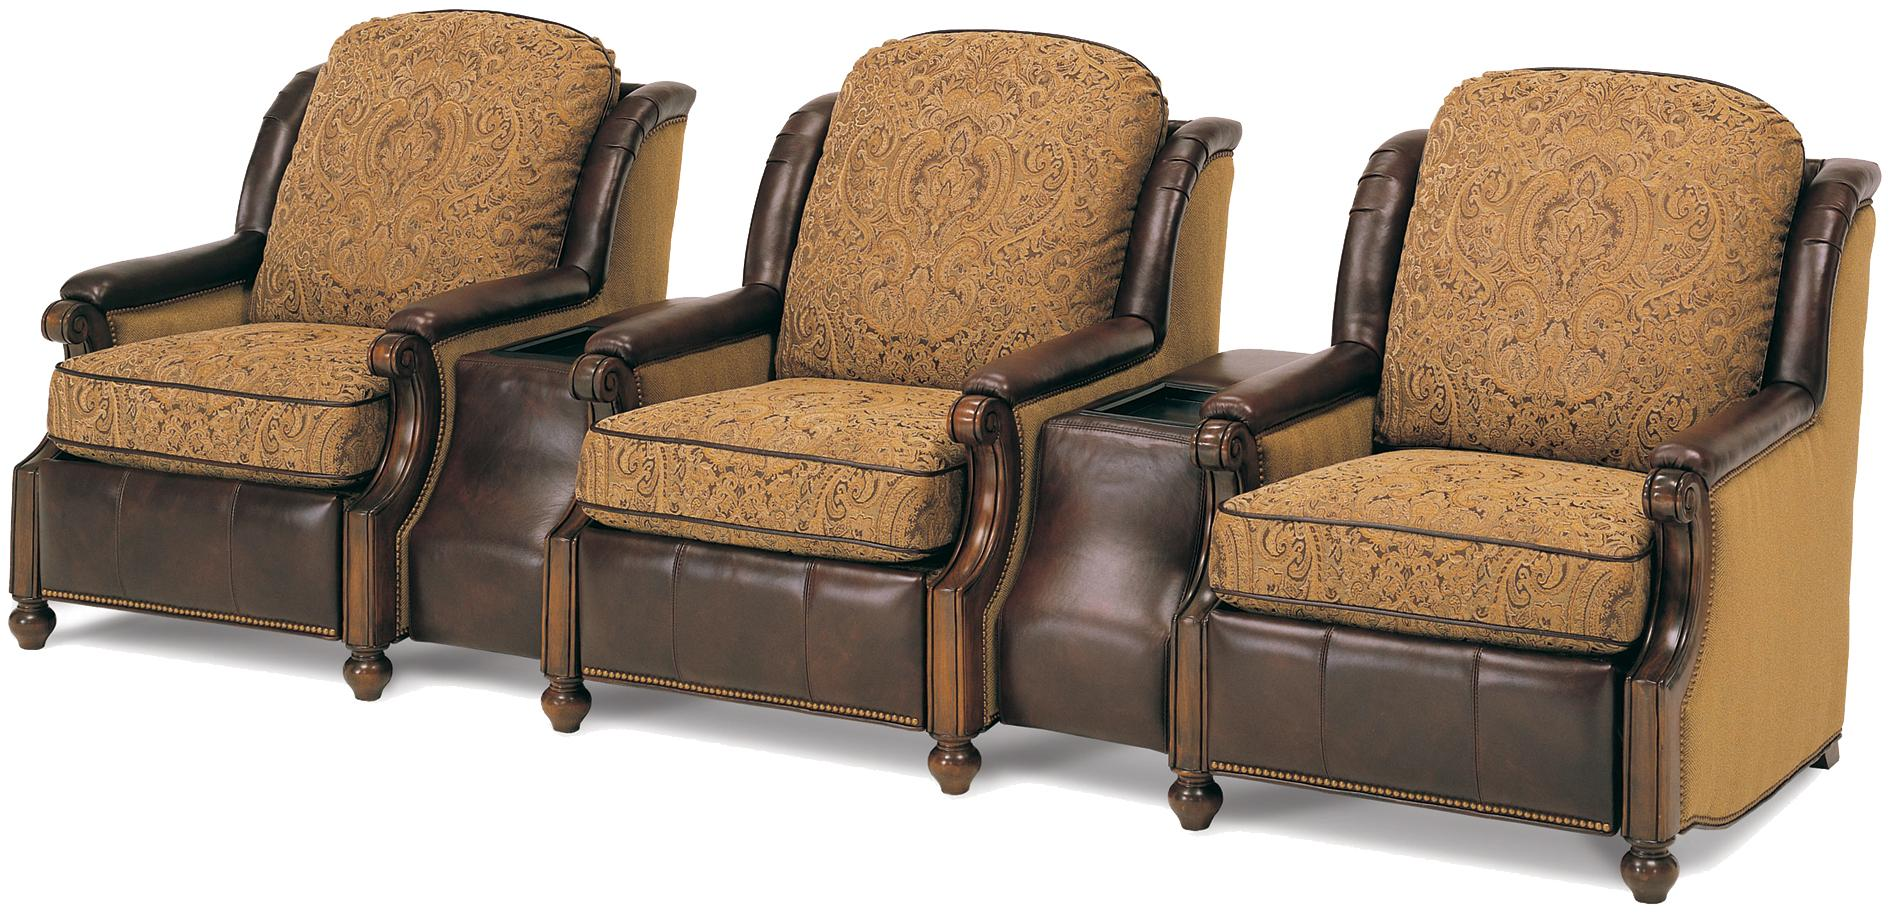 Home Theater Seating 207 Series Home Theater Seating by MotionCraft by Sherrill at Alison Craig Home Furnishings